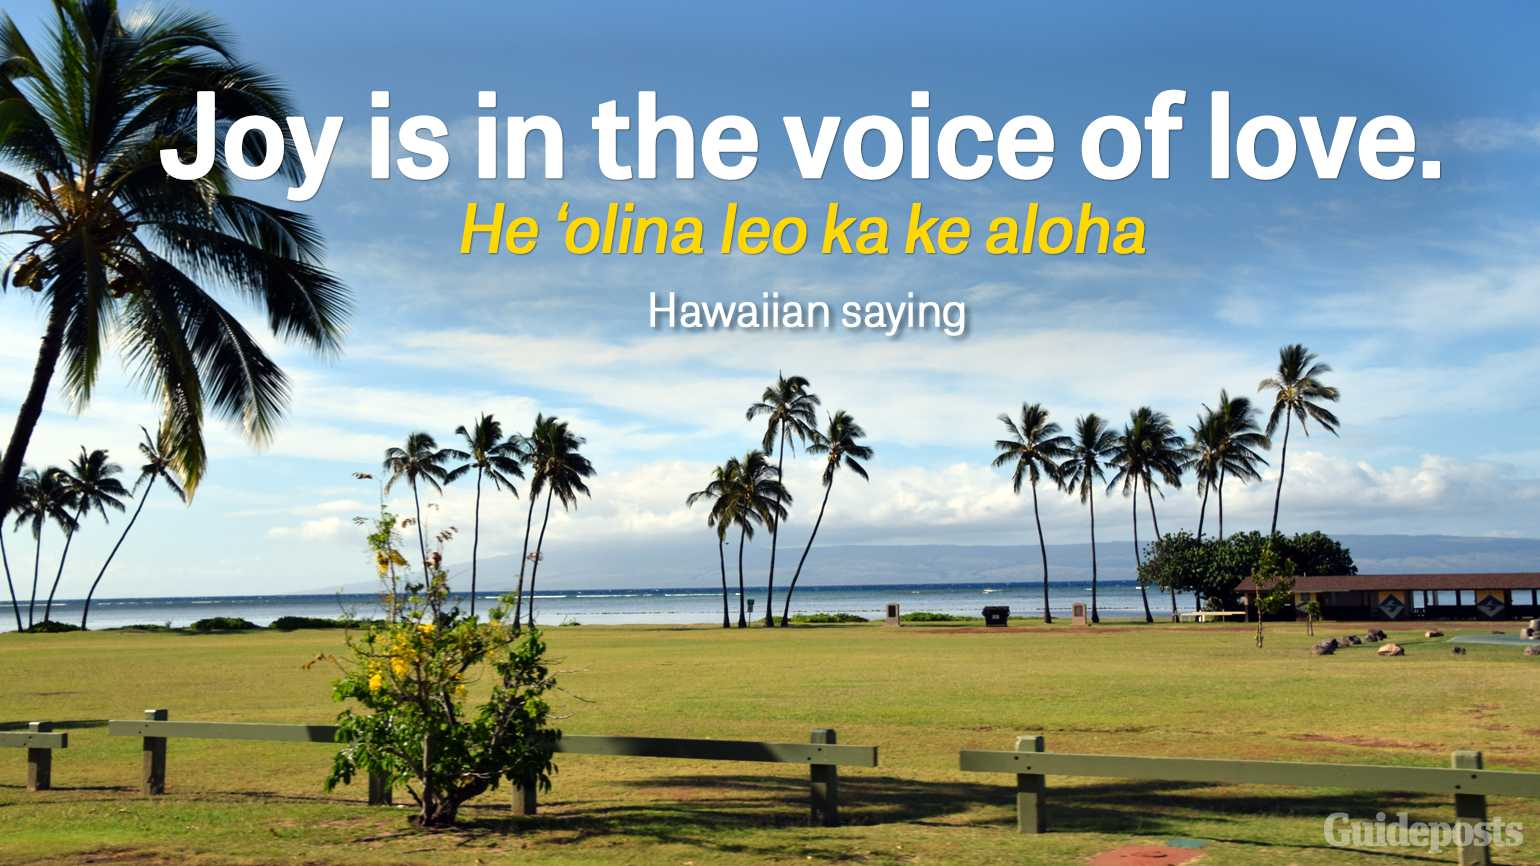 10 hawaiian sayings for a happier life guideposts grid view m4hsunfo